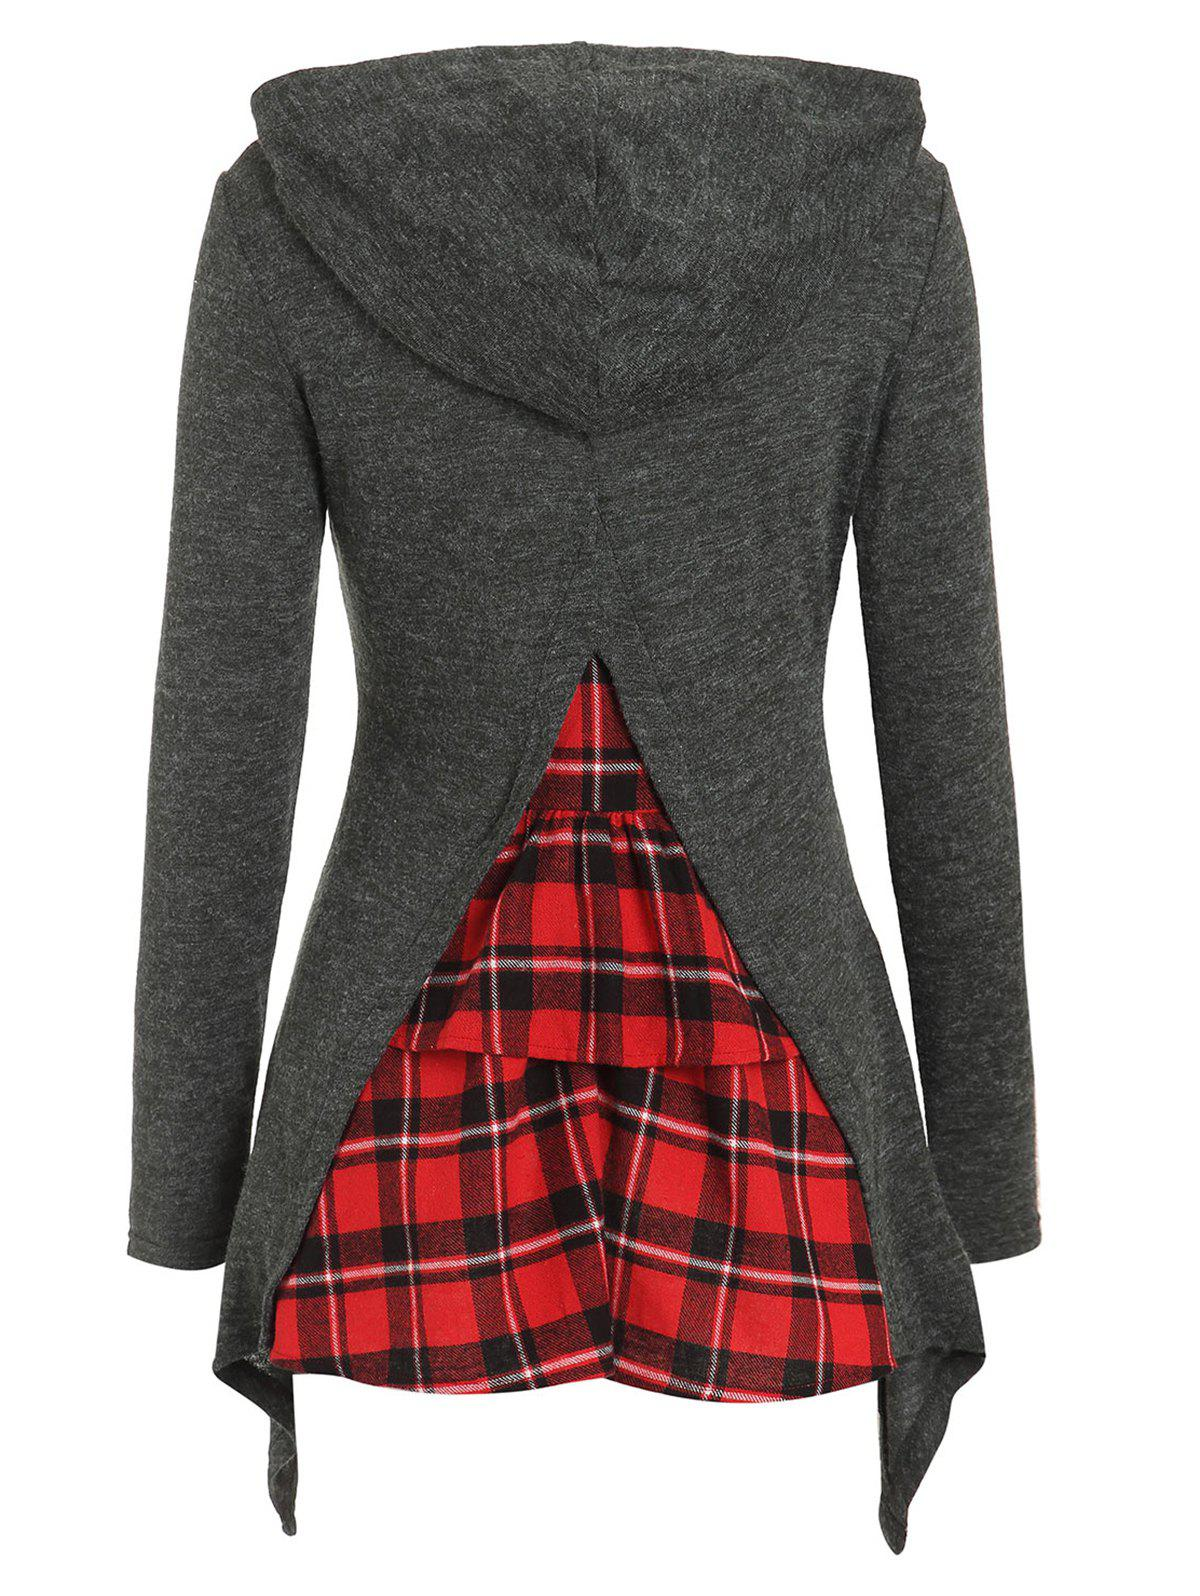 Buy Tartan Ruffles Insert Hooded Knitwear